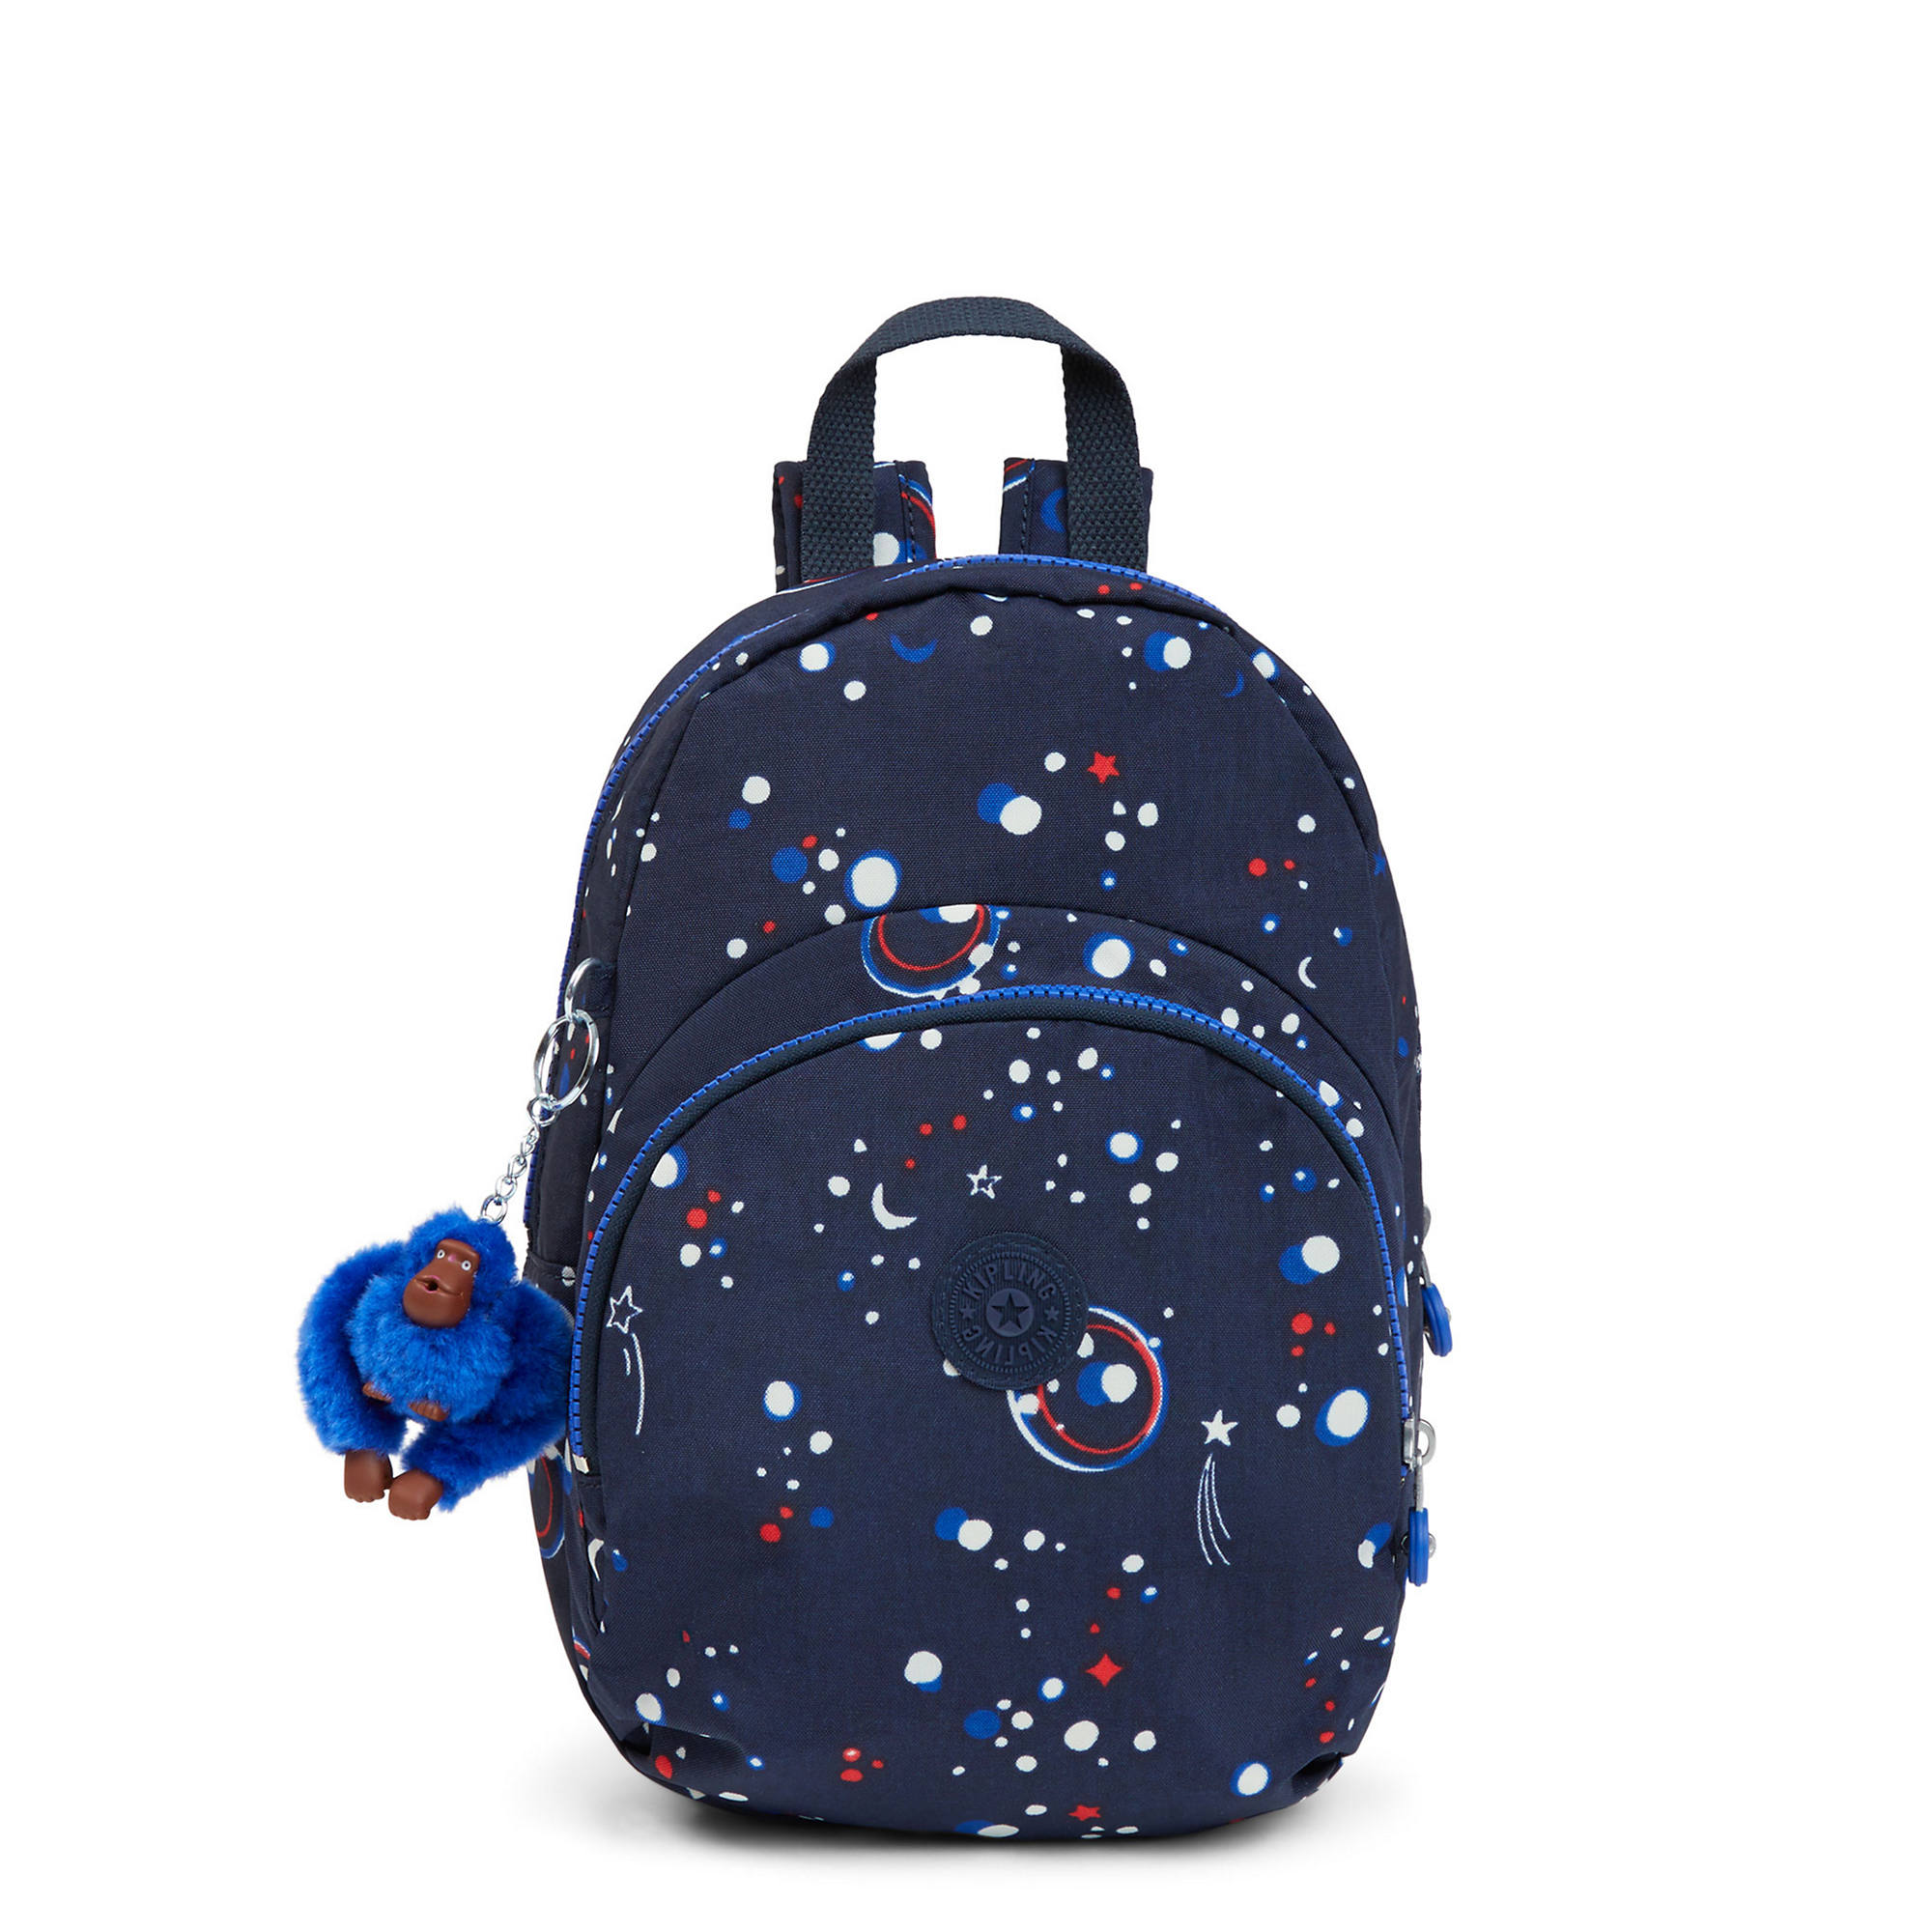 reasonable price usa cheap sale best website Jacque Printed Kids Backpack